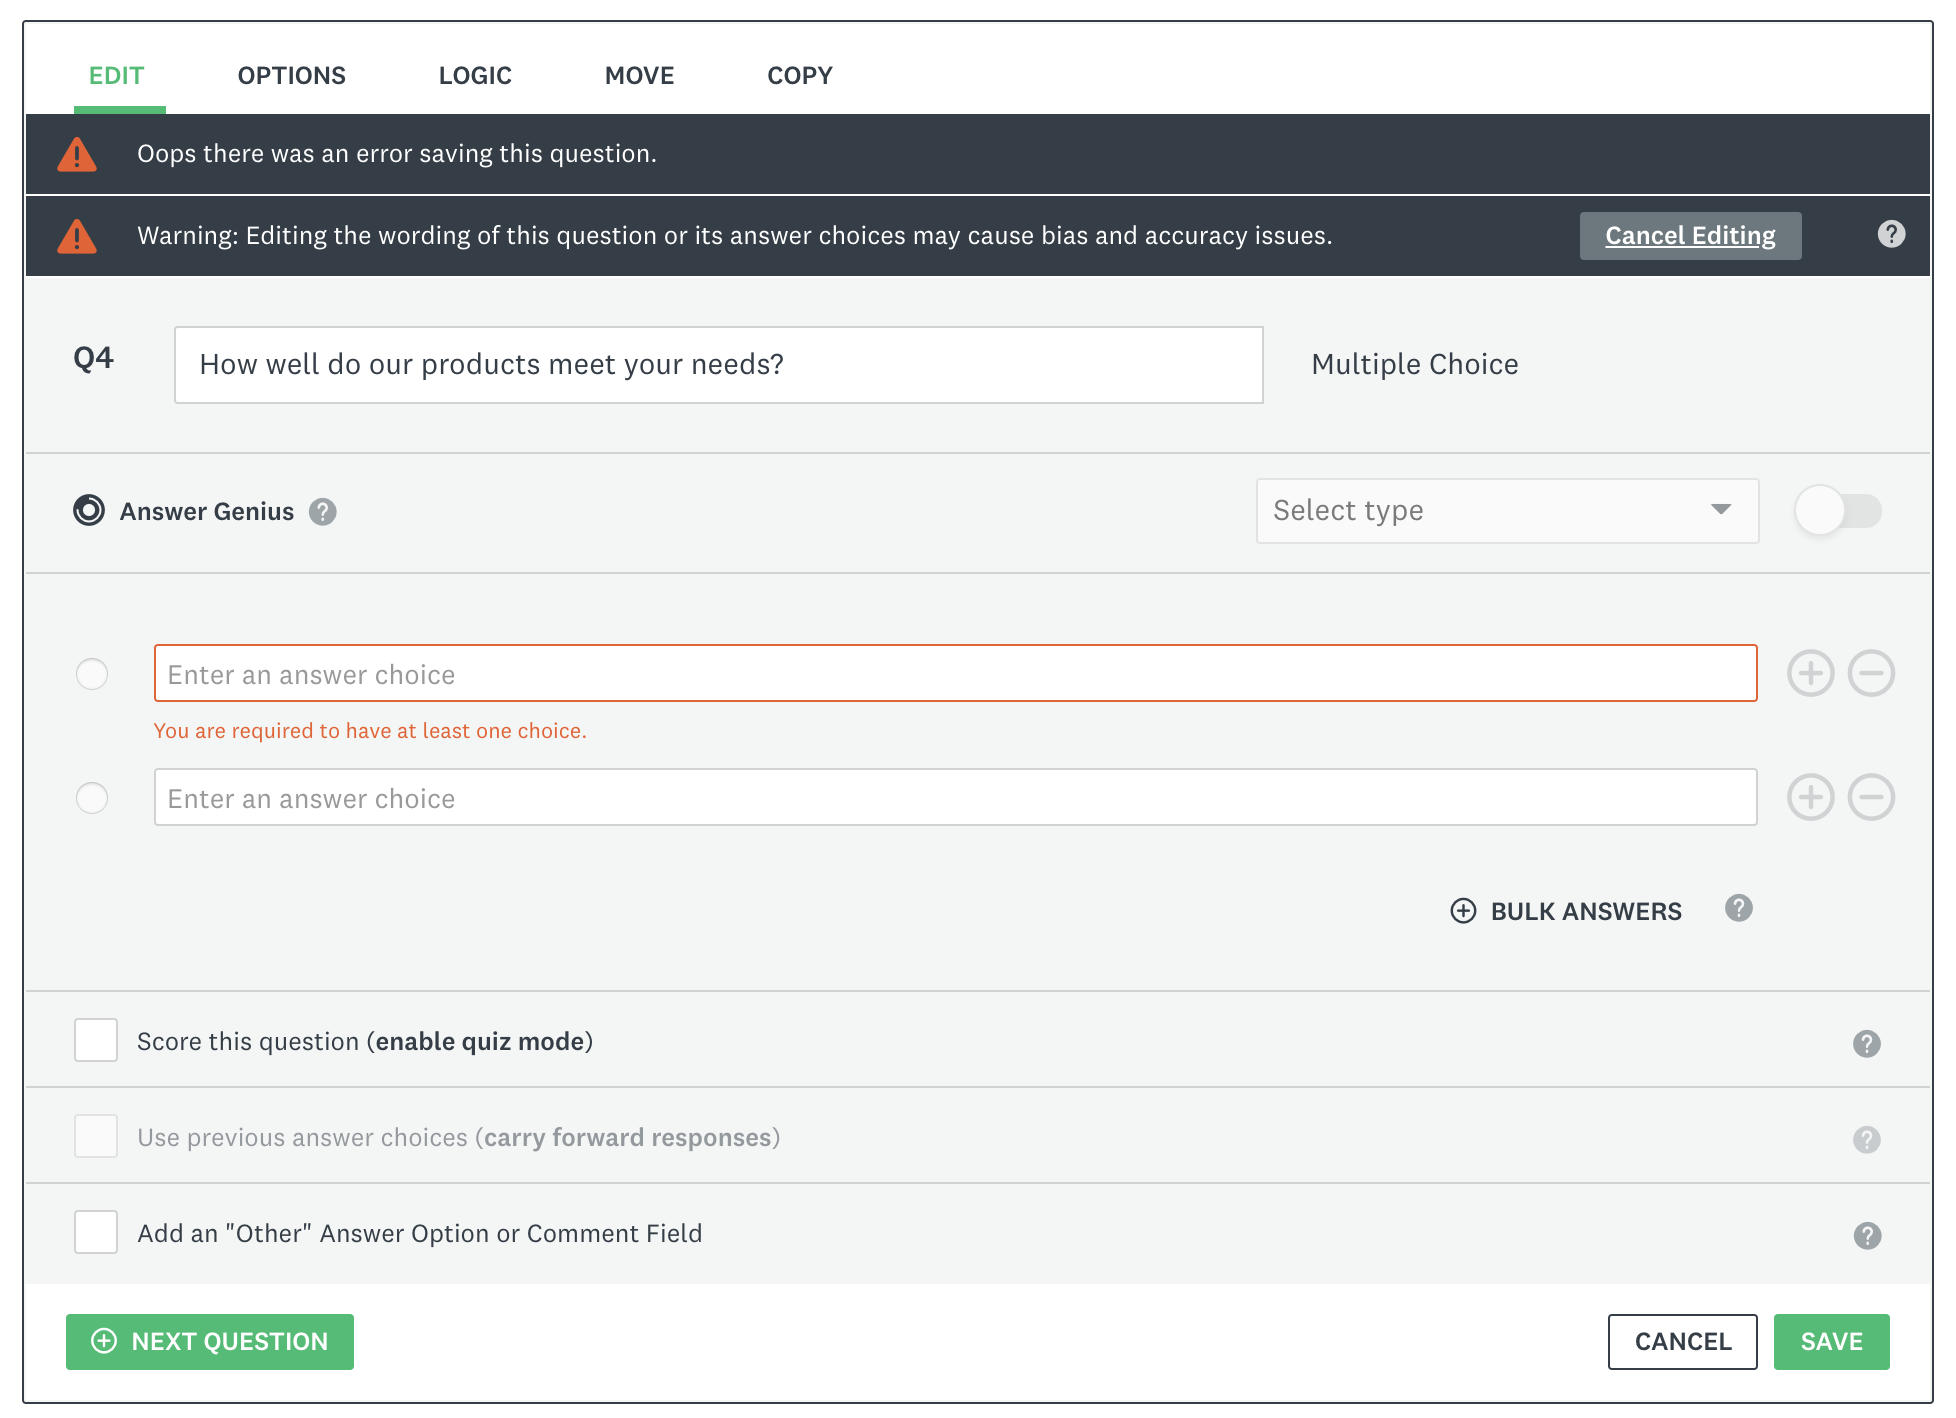 How to Report Errors in Forms: 10 Design Guidelines